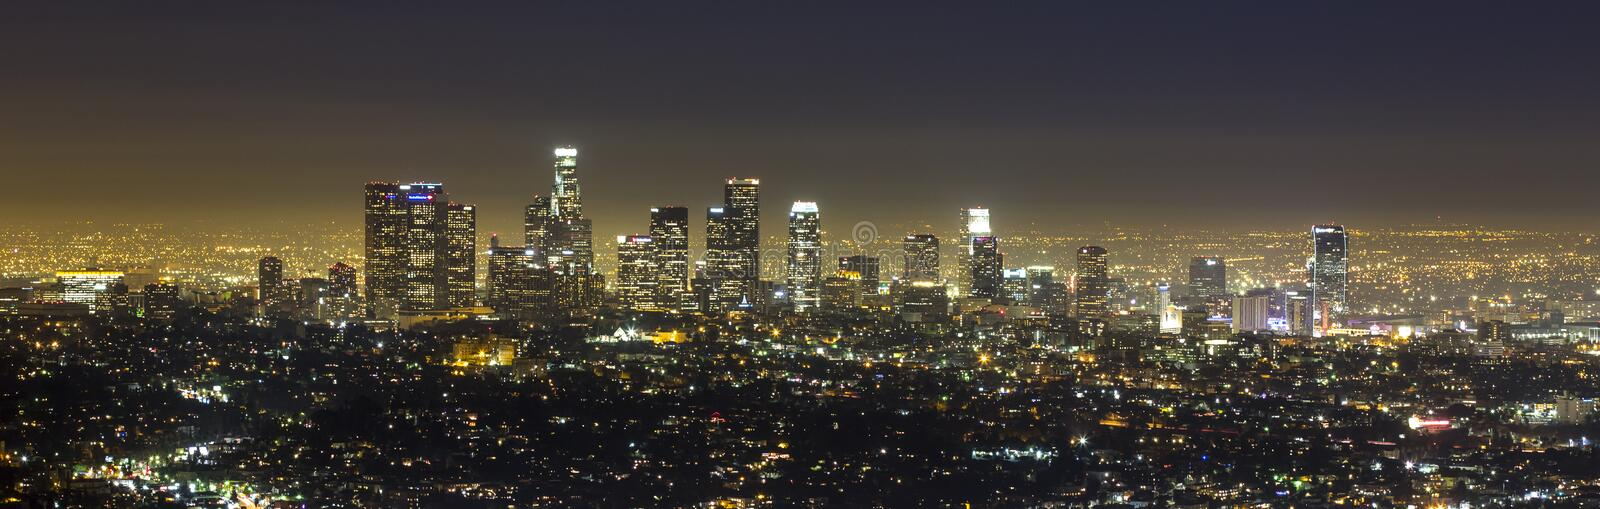 Los Angeles alla notte. fotografie stock